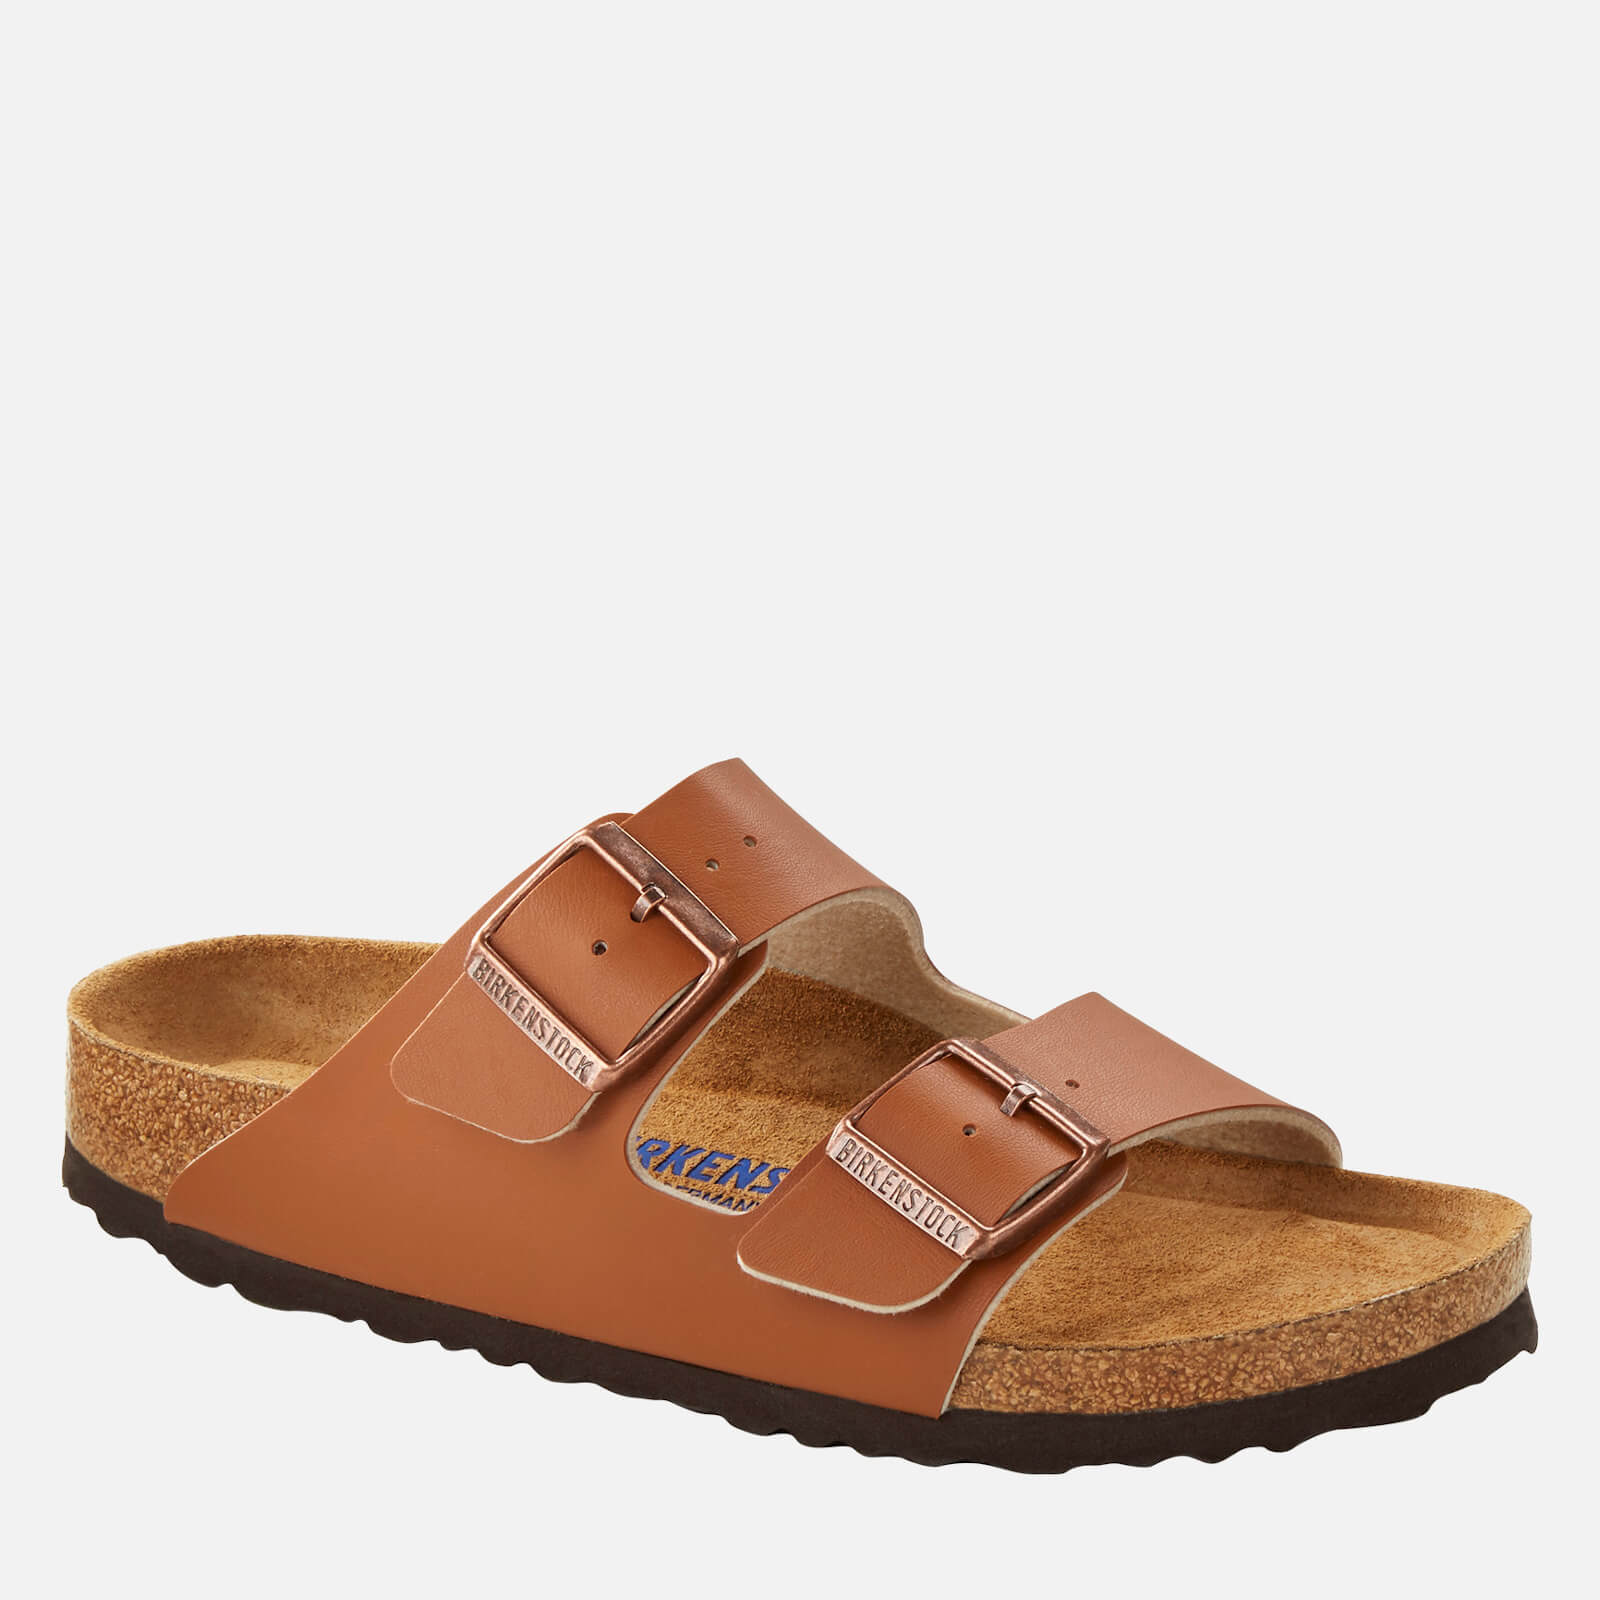 Birkenstock Mens Arizona Double Strap Sandals Ginger Brown Eu 40 Uk 7